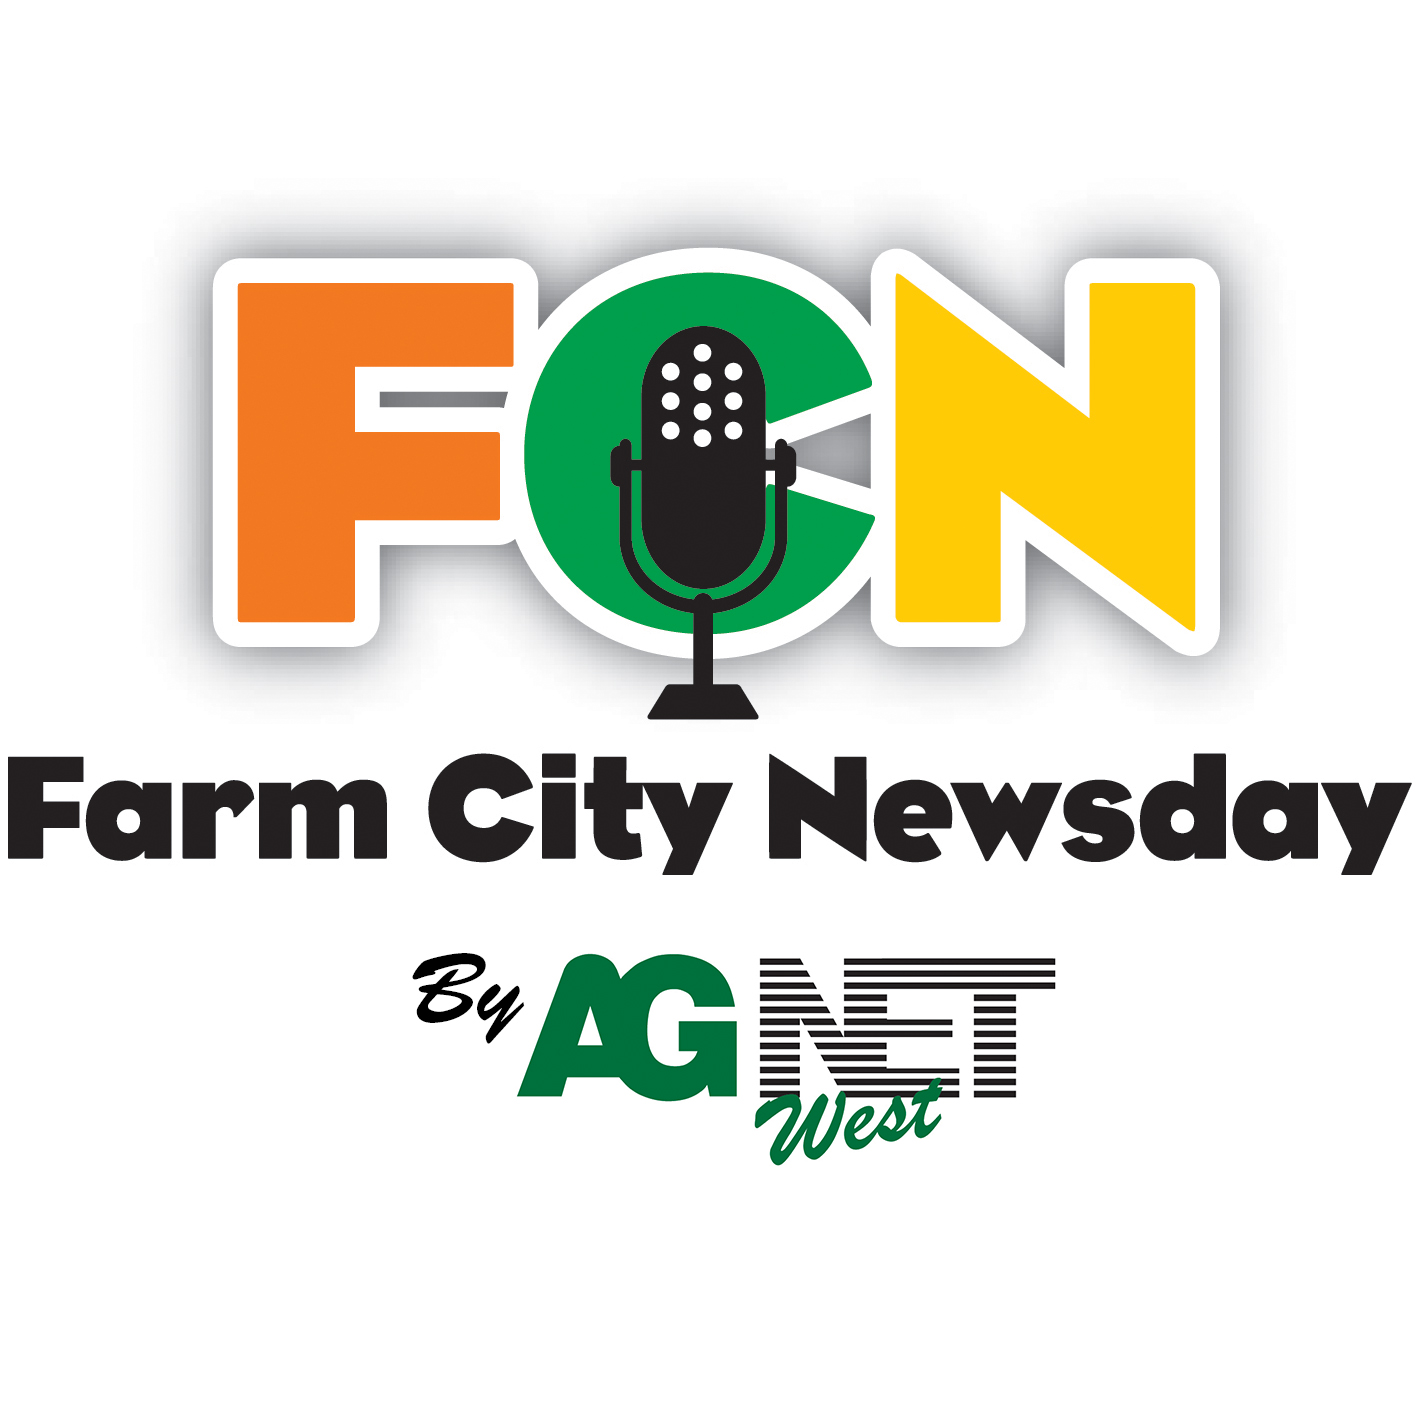 Farm City Newsday Friday, 04-12-19